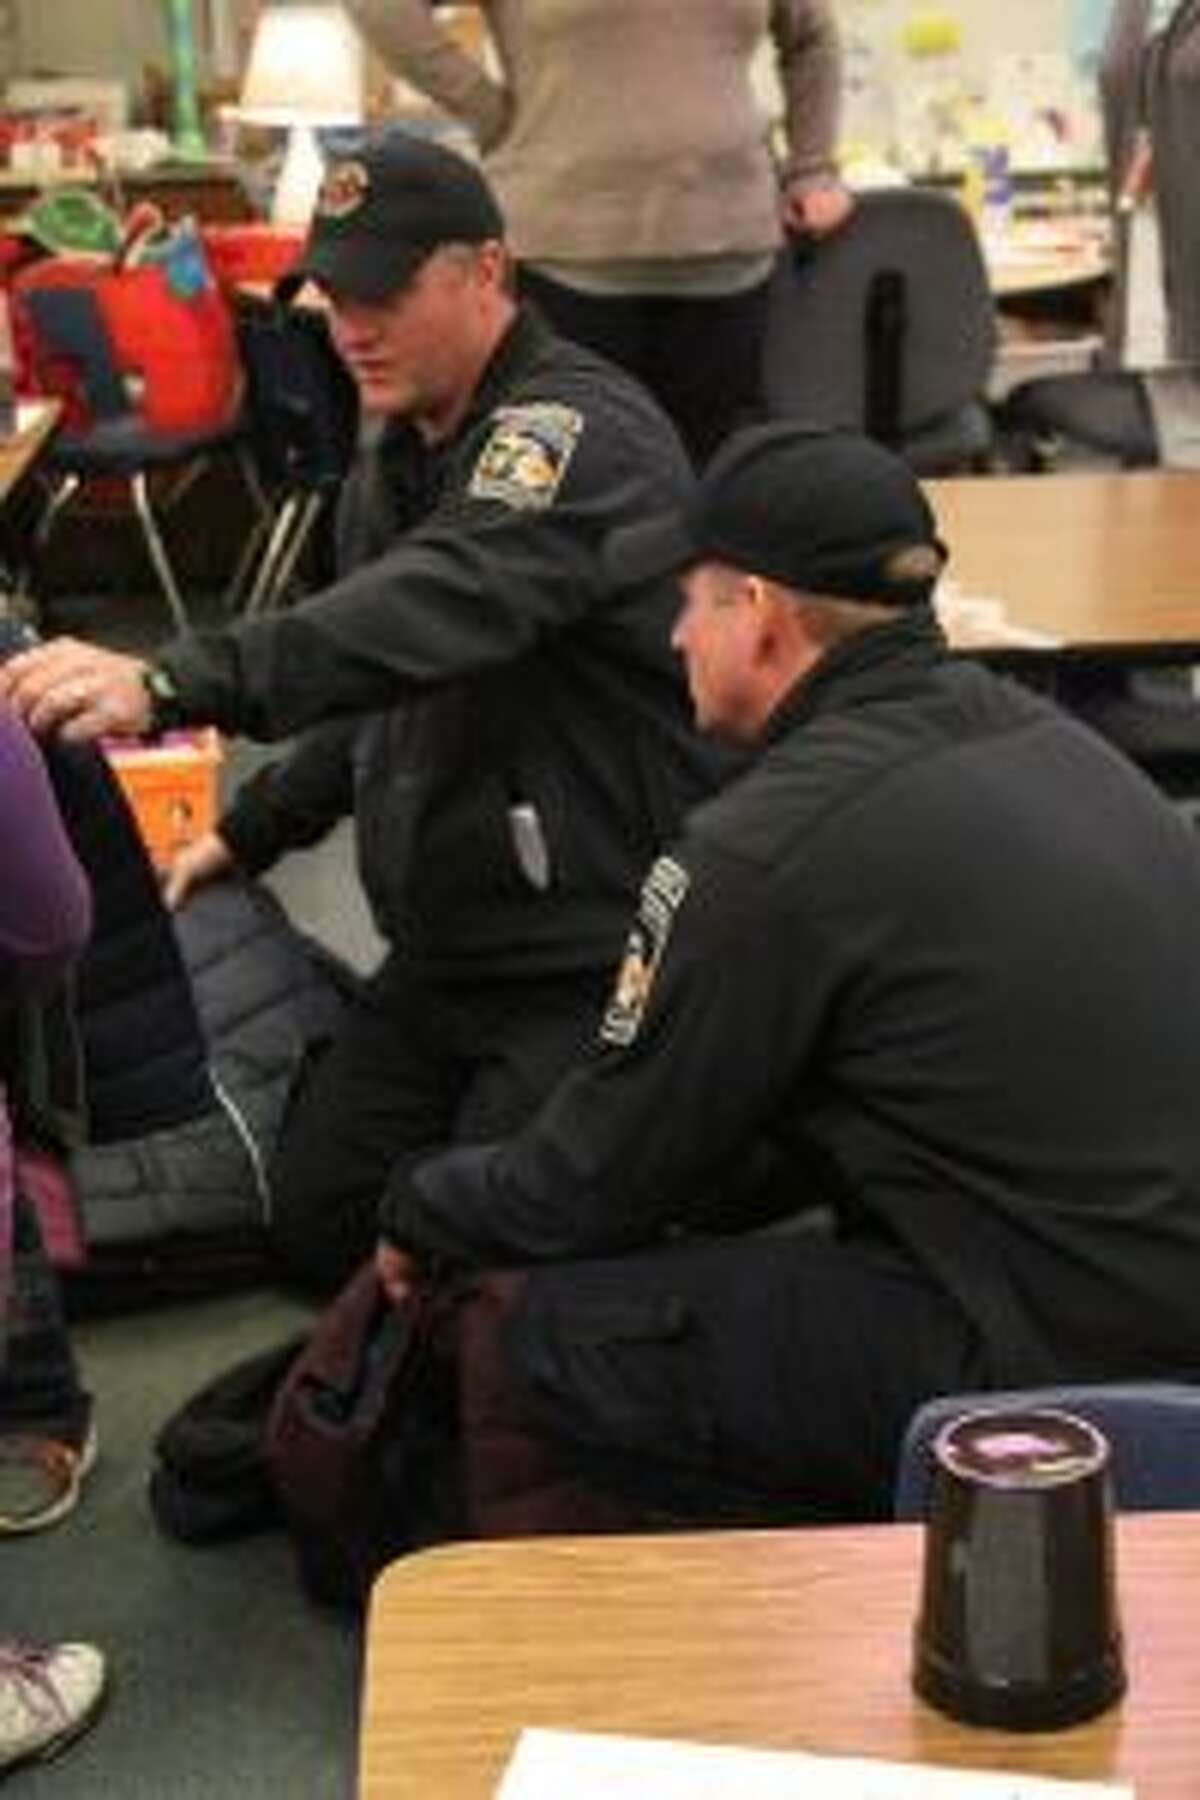 Big Rapids firefighters Russ Bell (left) and Sean Wethington help deliver winter apparel for kids at Brookside Elementary on Wednesday morning. Big Rapids firefighters' unions generated more than $1,200 for the coats, hats, scarves, gloves and snow pants.